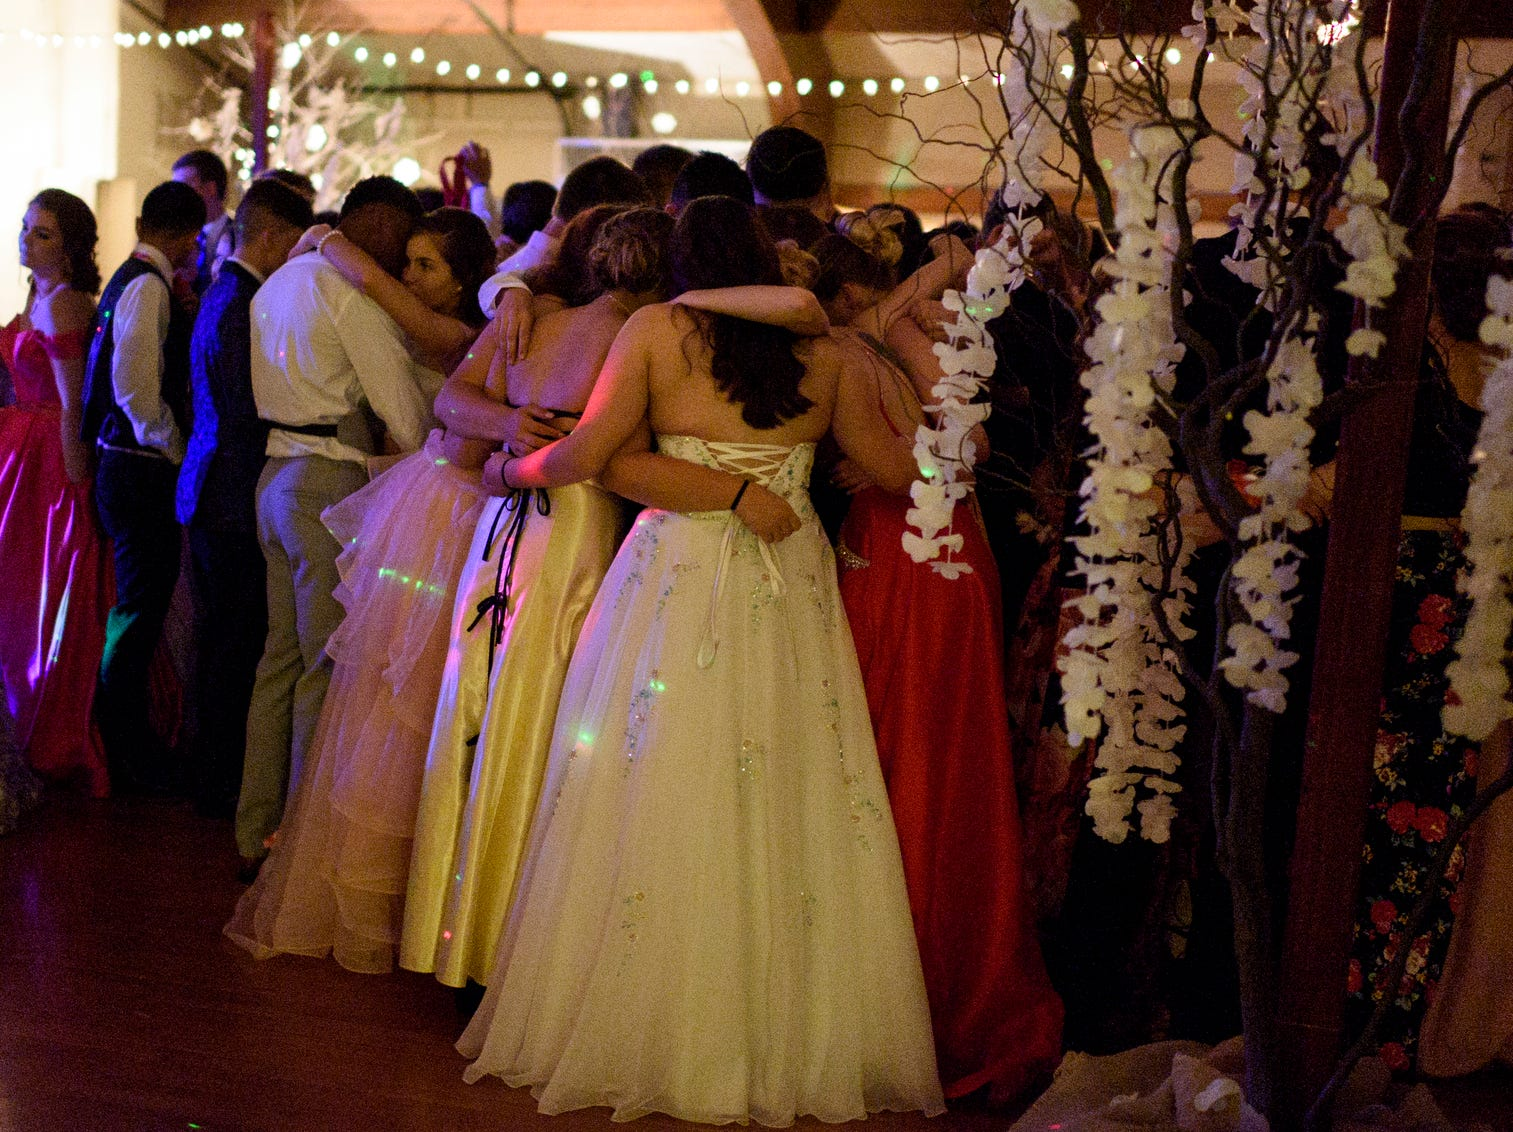 """Students huddle together and sway along to slow song on the dance floor during Central High School's """"Uptown Night"""" themed prom held at the Vanderburgh 4-H Center auditorium in Evansville, Ind., Saturday, April 27, 2019."""